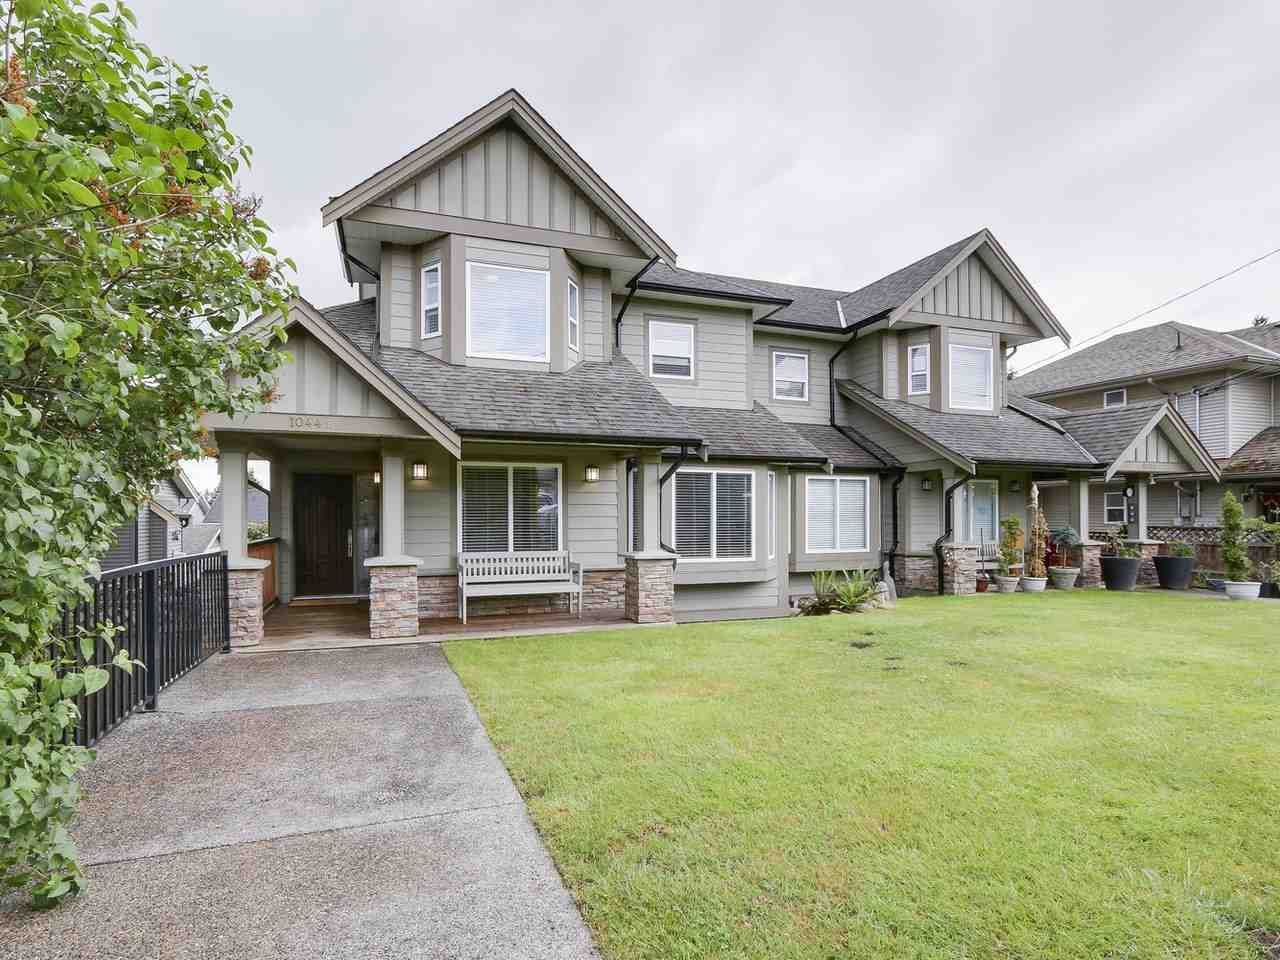 Main Photo: 1044B CHARLAND Avenue in Coquitlam: Central Coquitlam 1/2 Duplex for sale : MLS®# R2172343